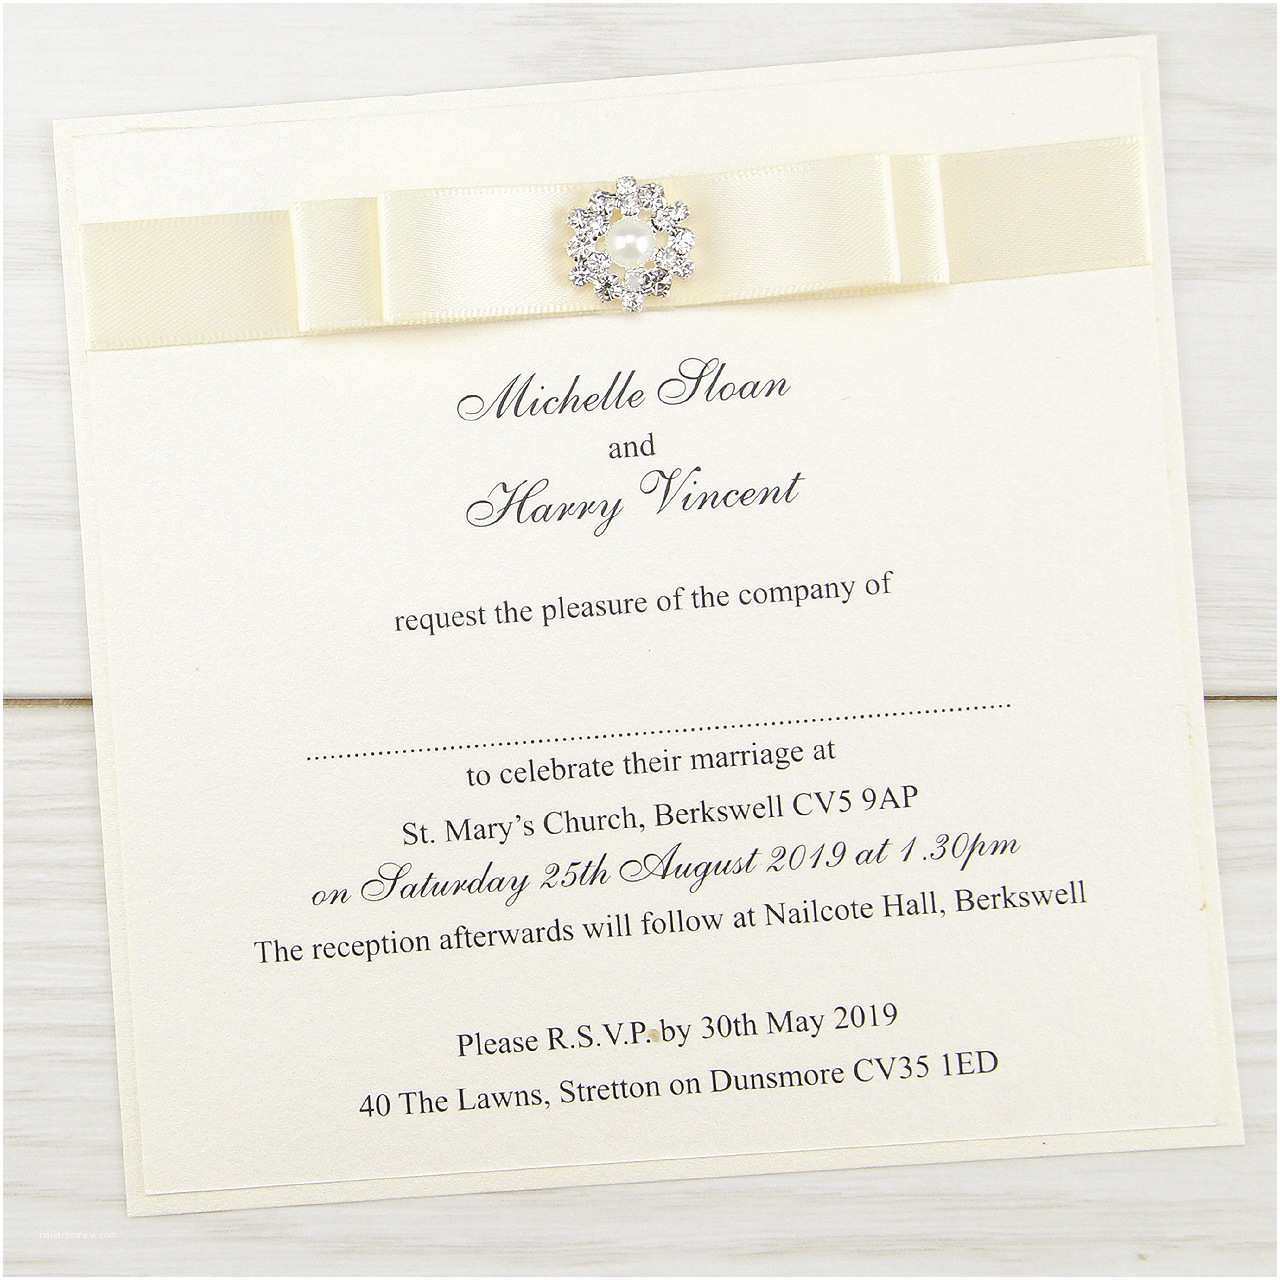 Wedding Invitations with Bows Dior Bow Layered Square